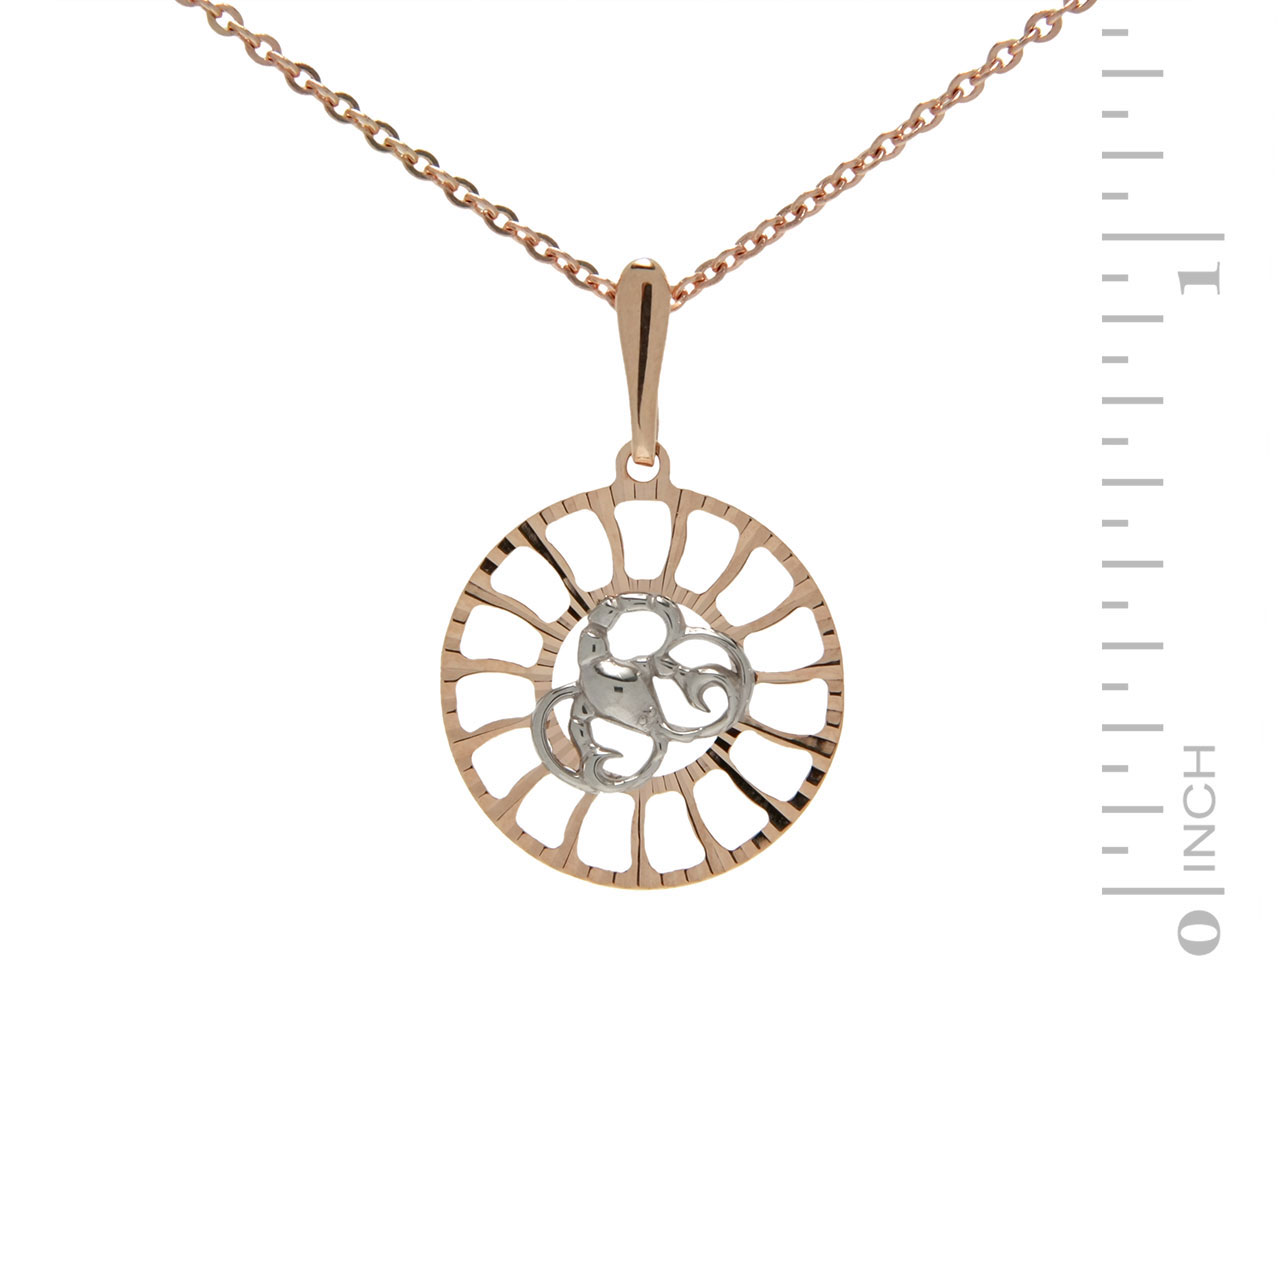 Sunburst-inspired Pendant 'Cancer Zodiac'